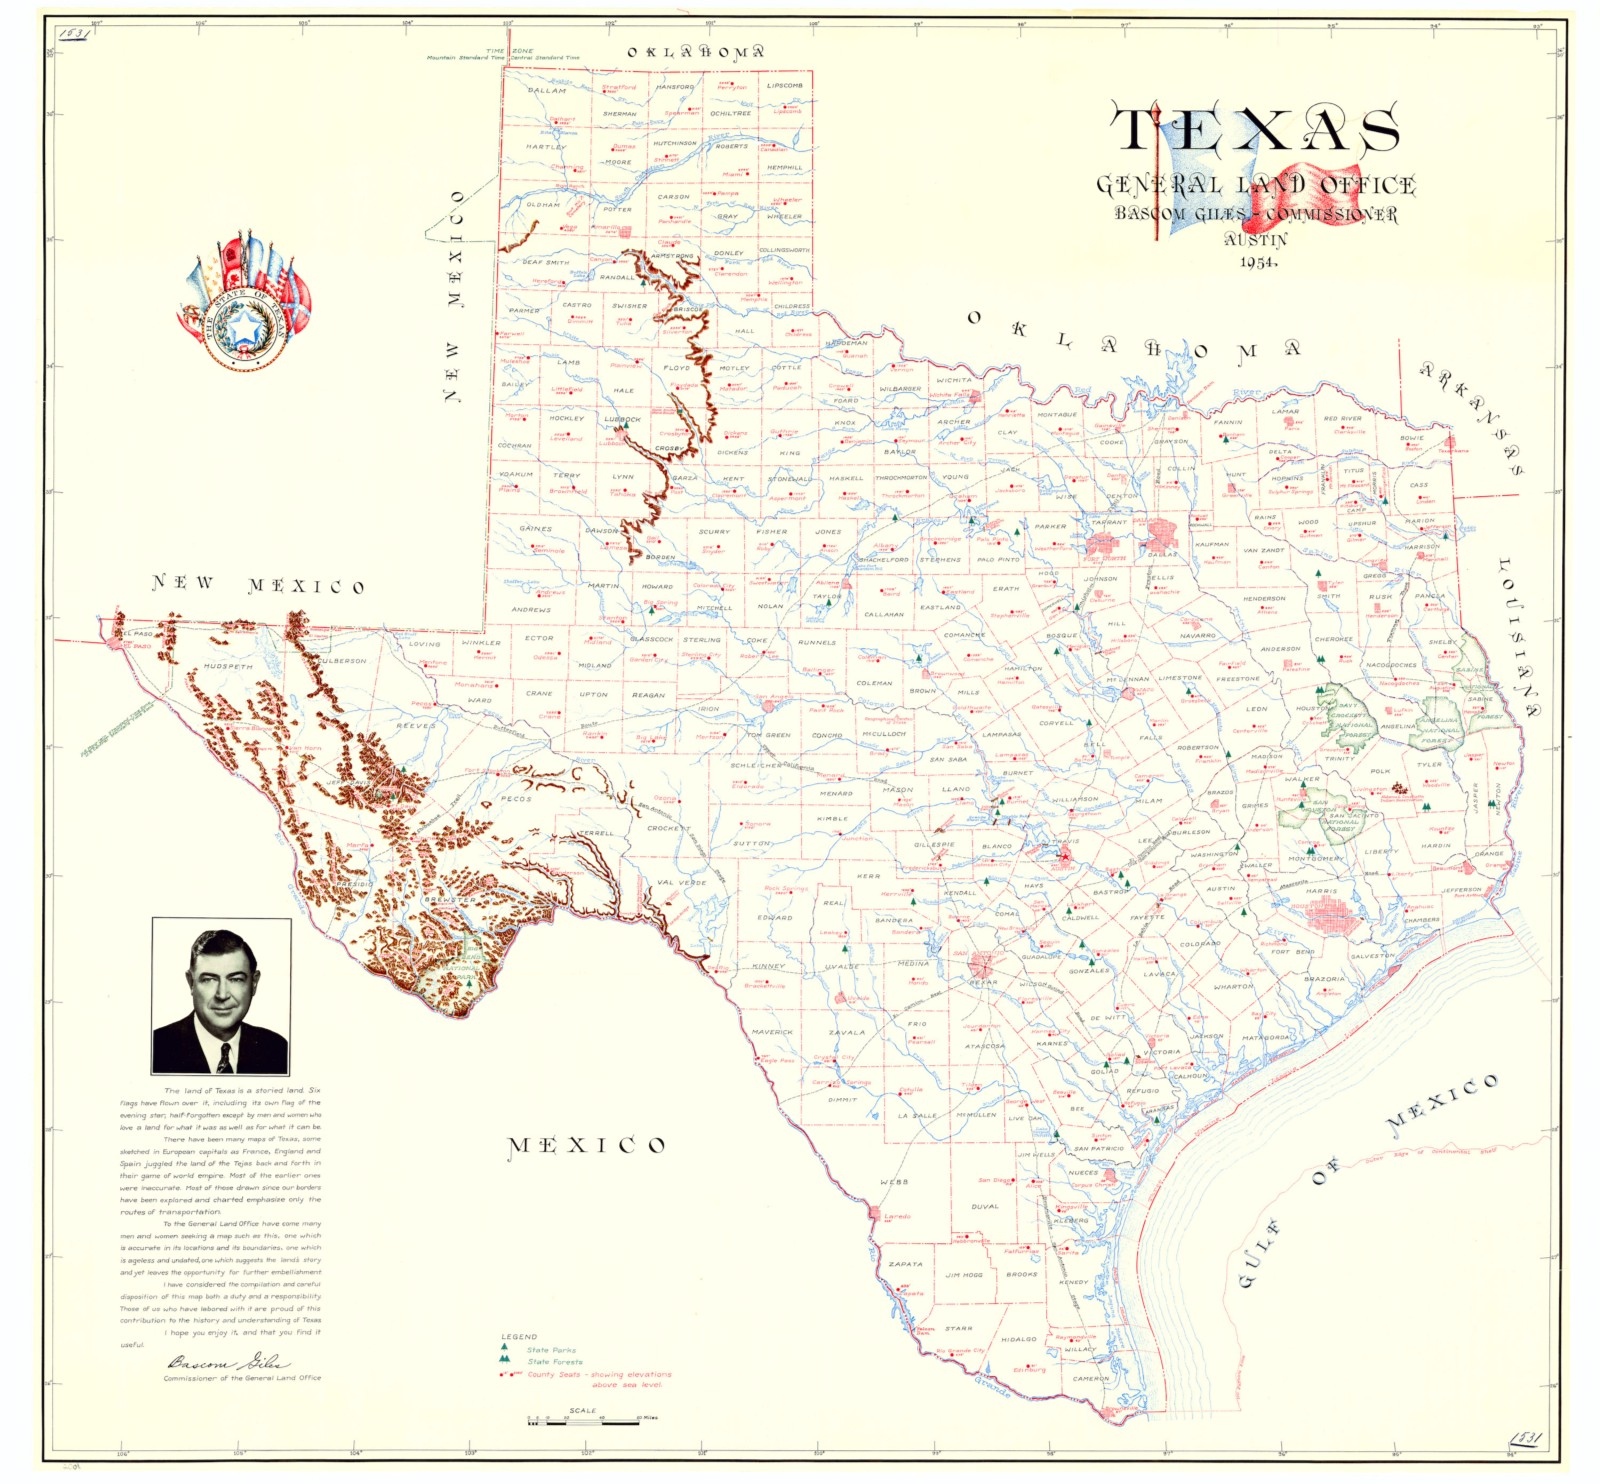 Austin Tx Map Of Texas.The Art Of Eltea Armstrong Part 2 Celebrating Texas